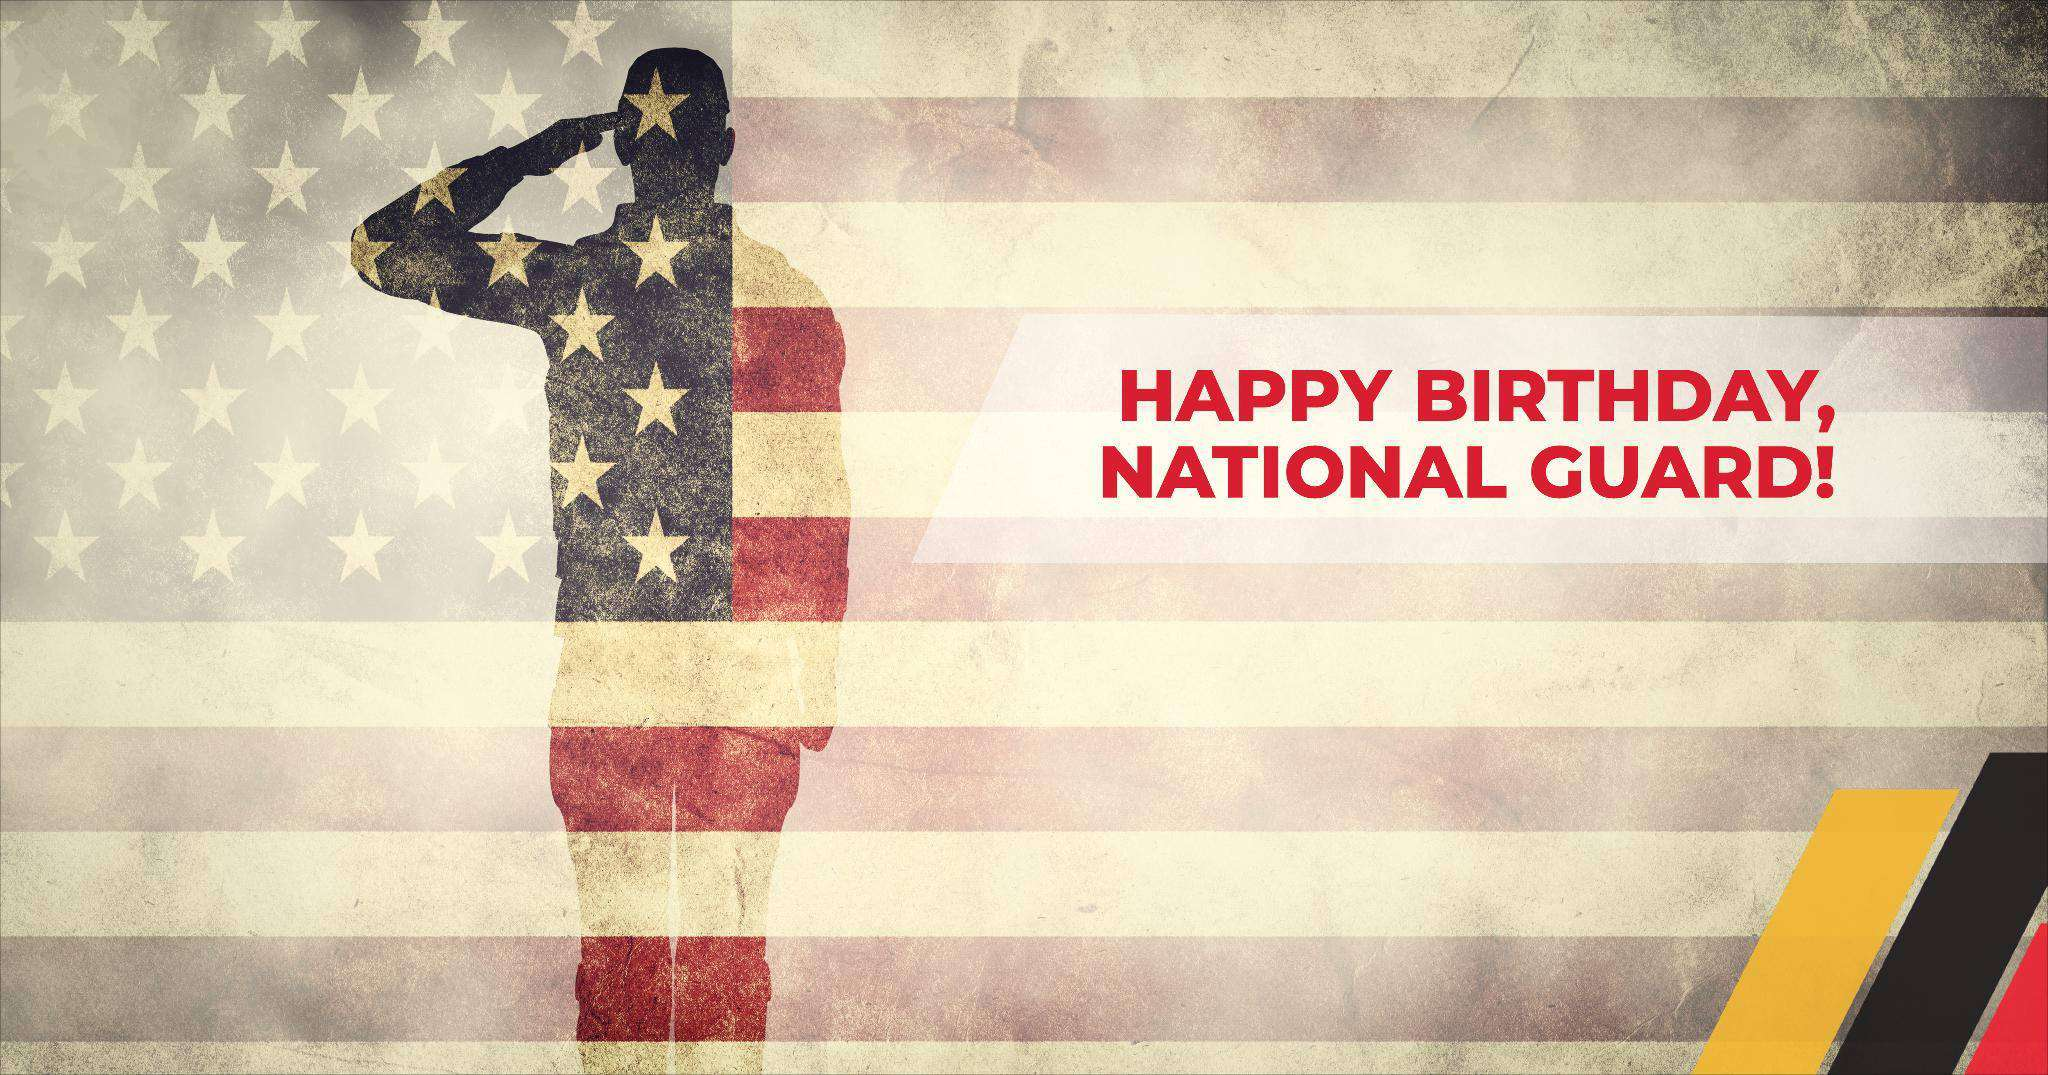 U.S. National Guard Birthday Wishes pics free download